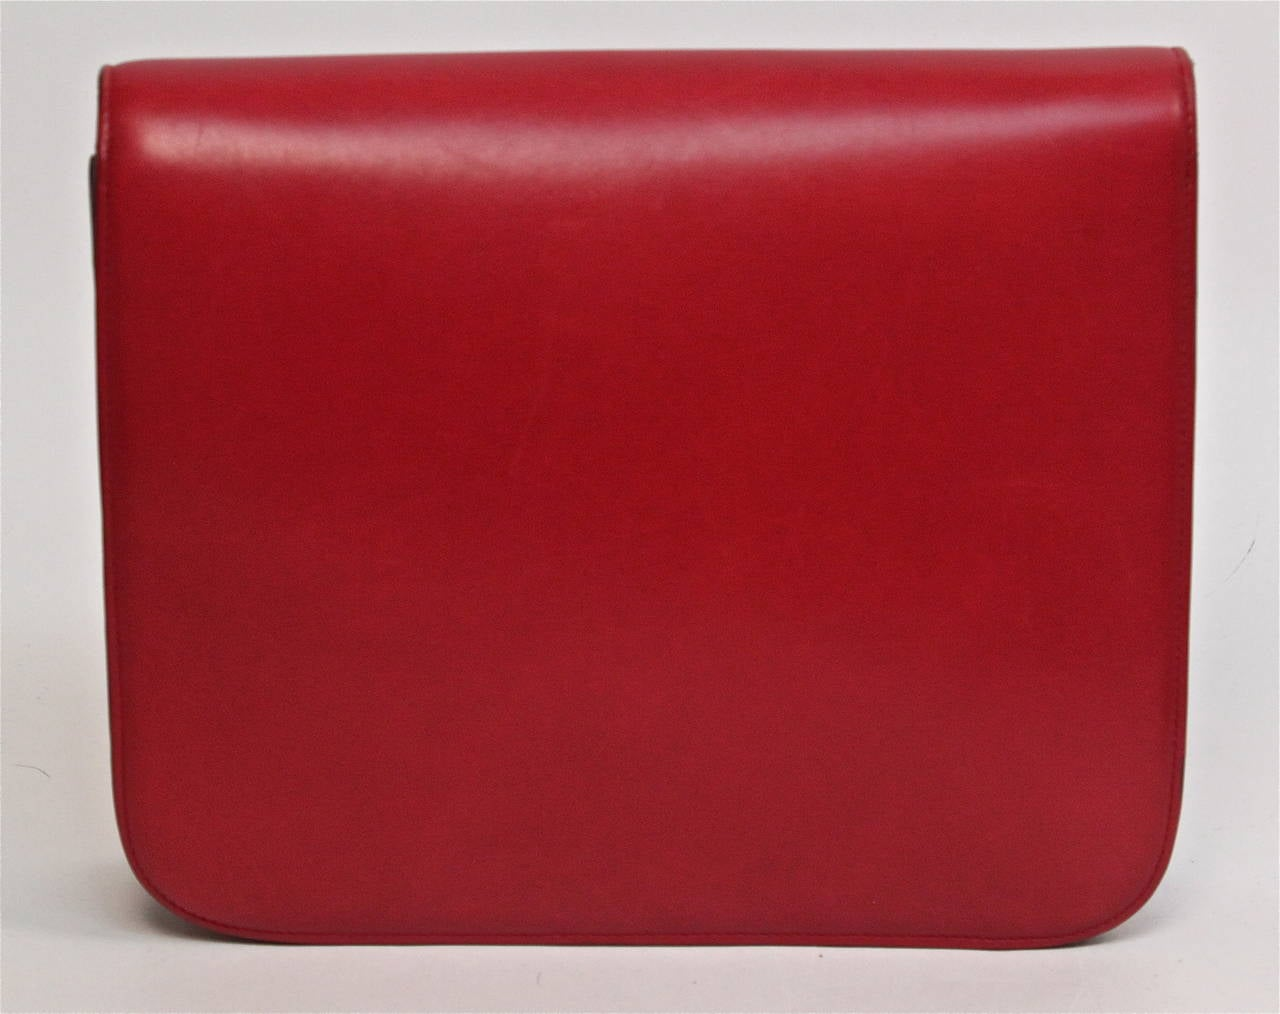 CELINE large classic box leather bag with convertible strap in red 4